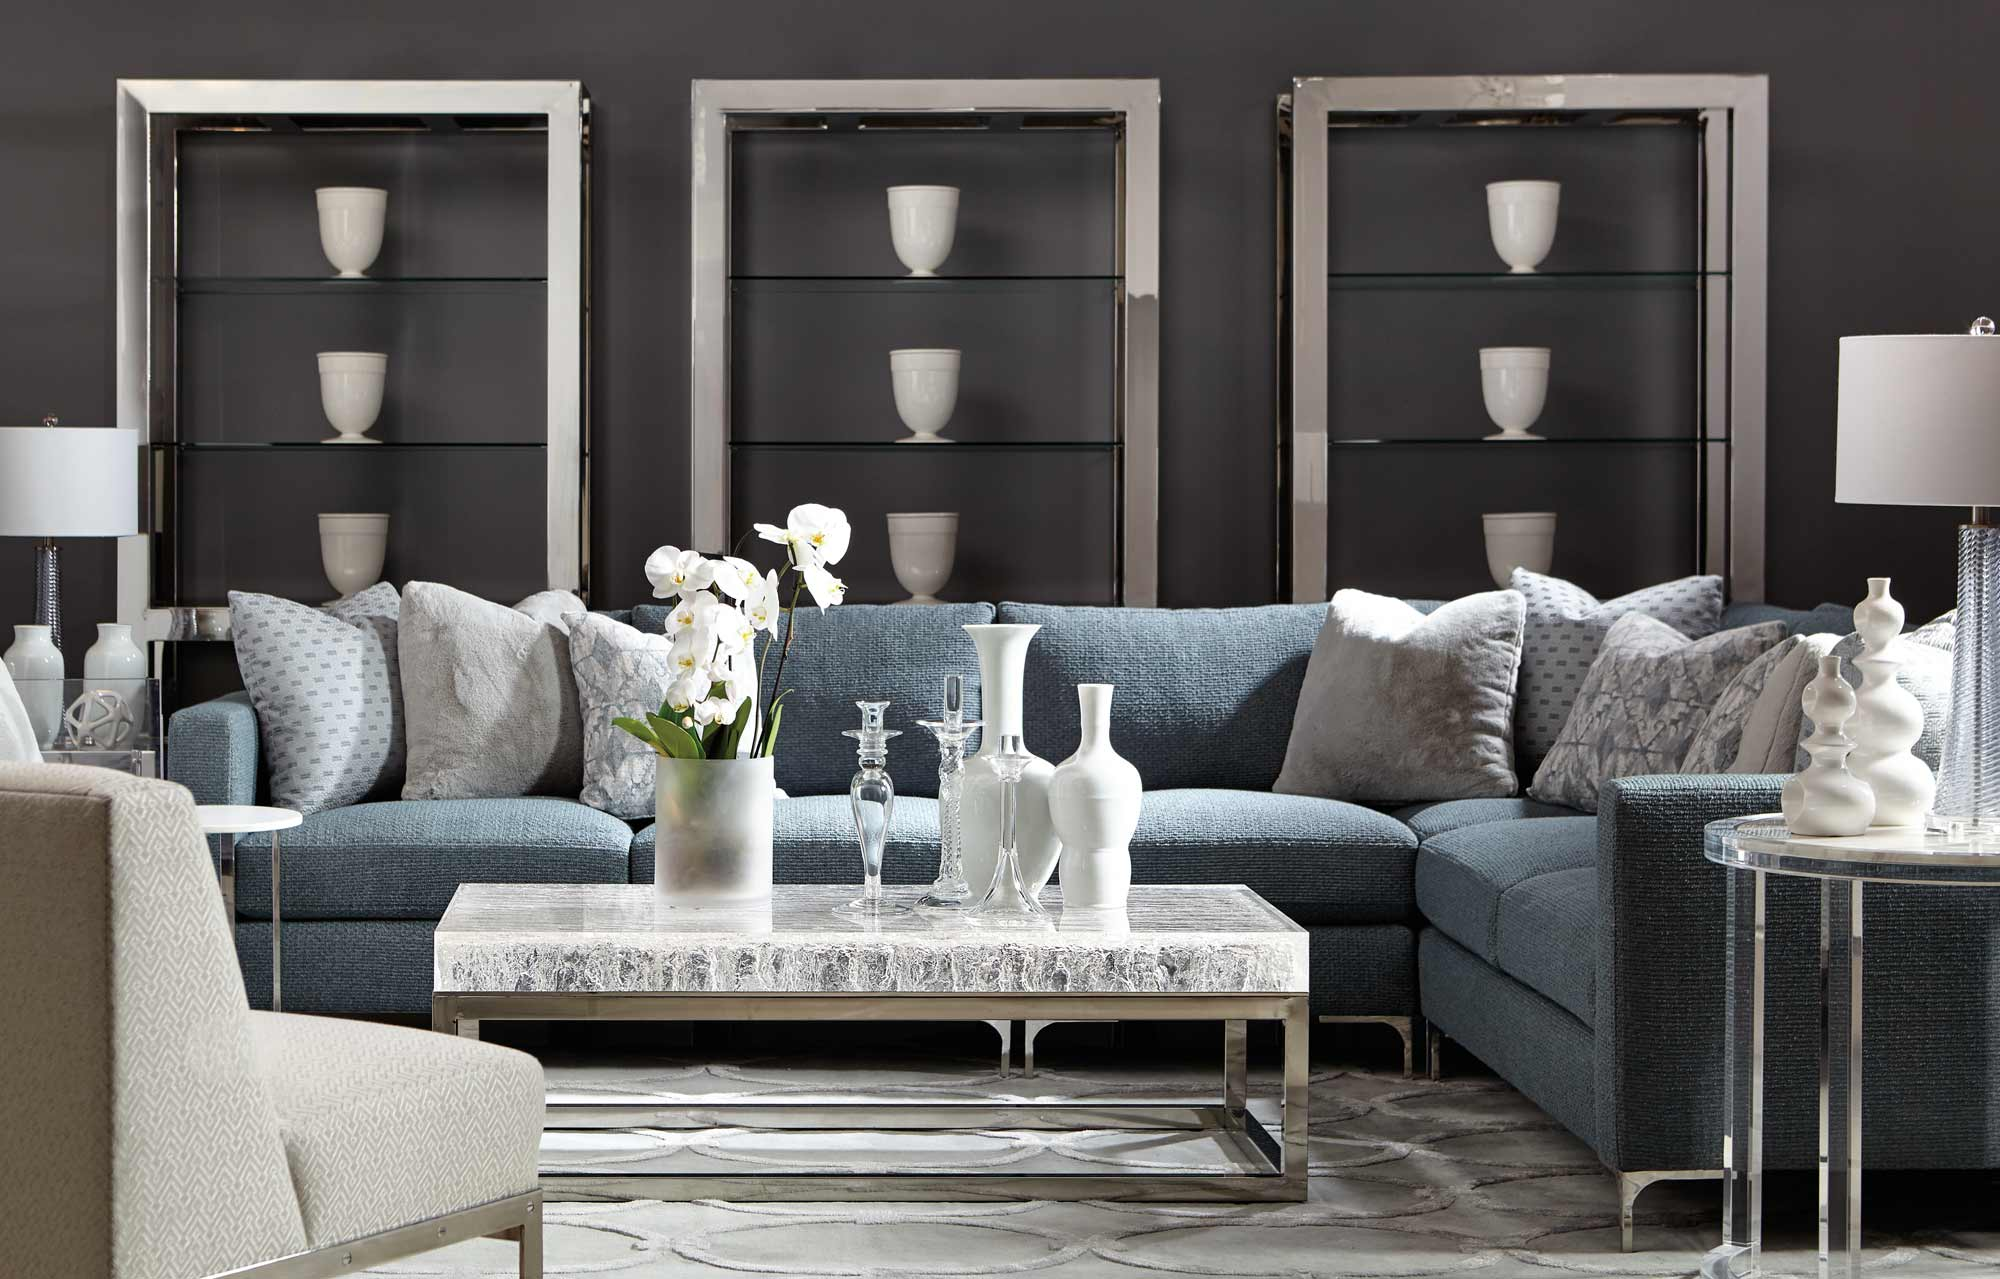 Top High-End Furniture Brands: Design, Quality, Luxury and More